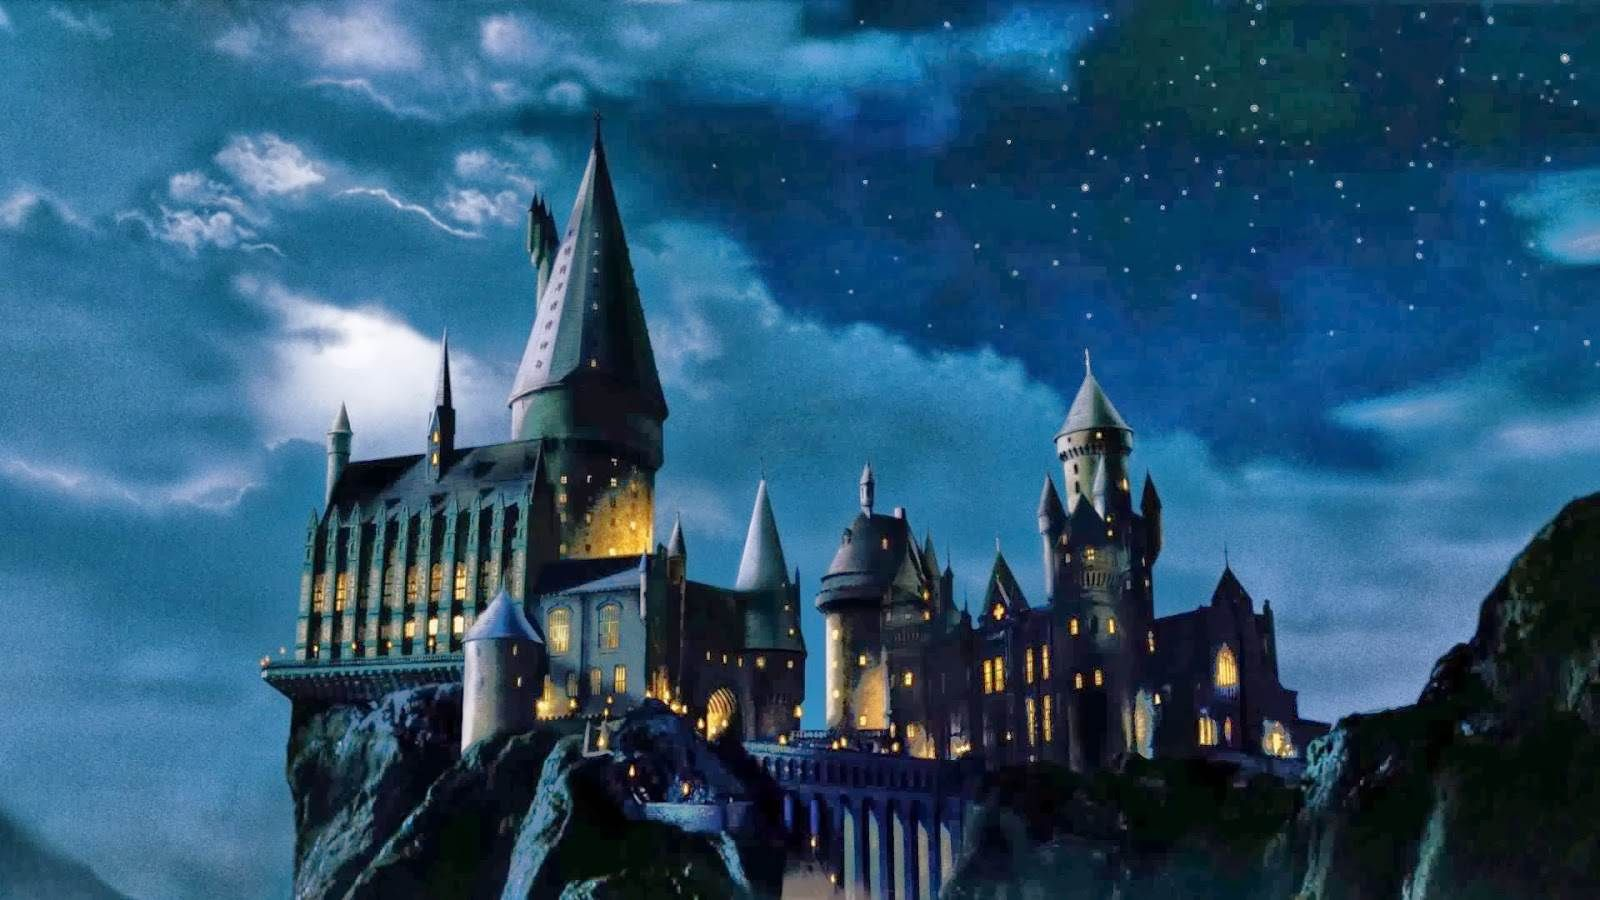 Harry Potter Wallpaper Hogwarts Wallpaper Desktop Background 1600 900 Harry P Harry Potter Wallpaper Backgrounds Desktop Wallpaper Harry Potter Harry Potter Pc